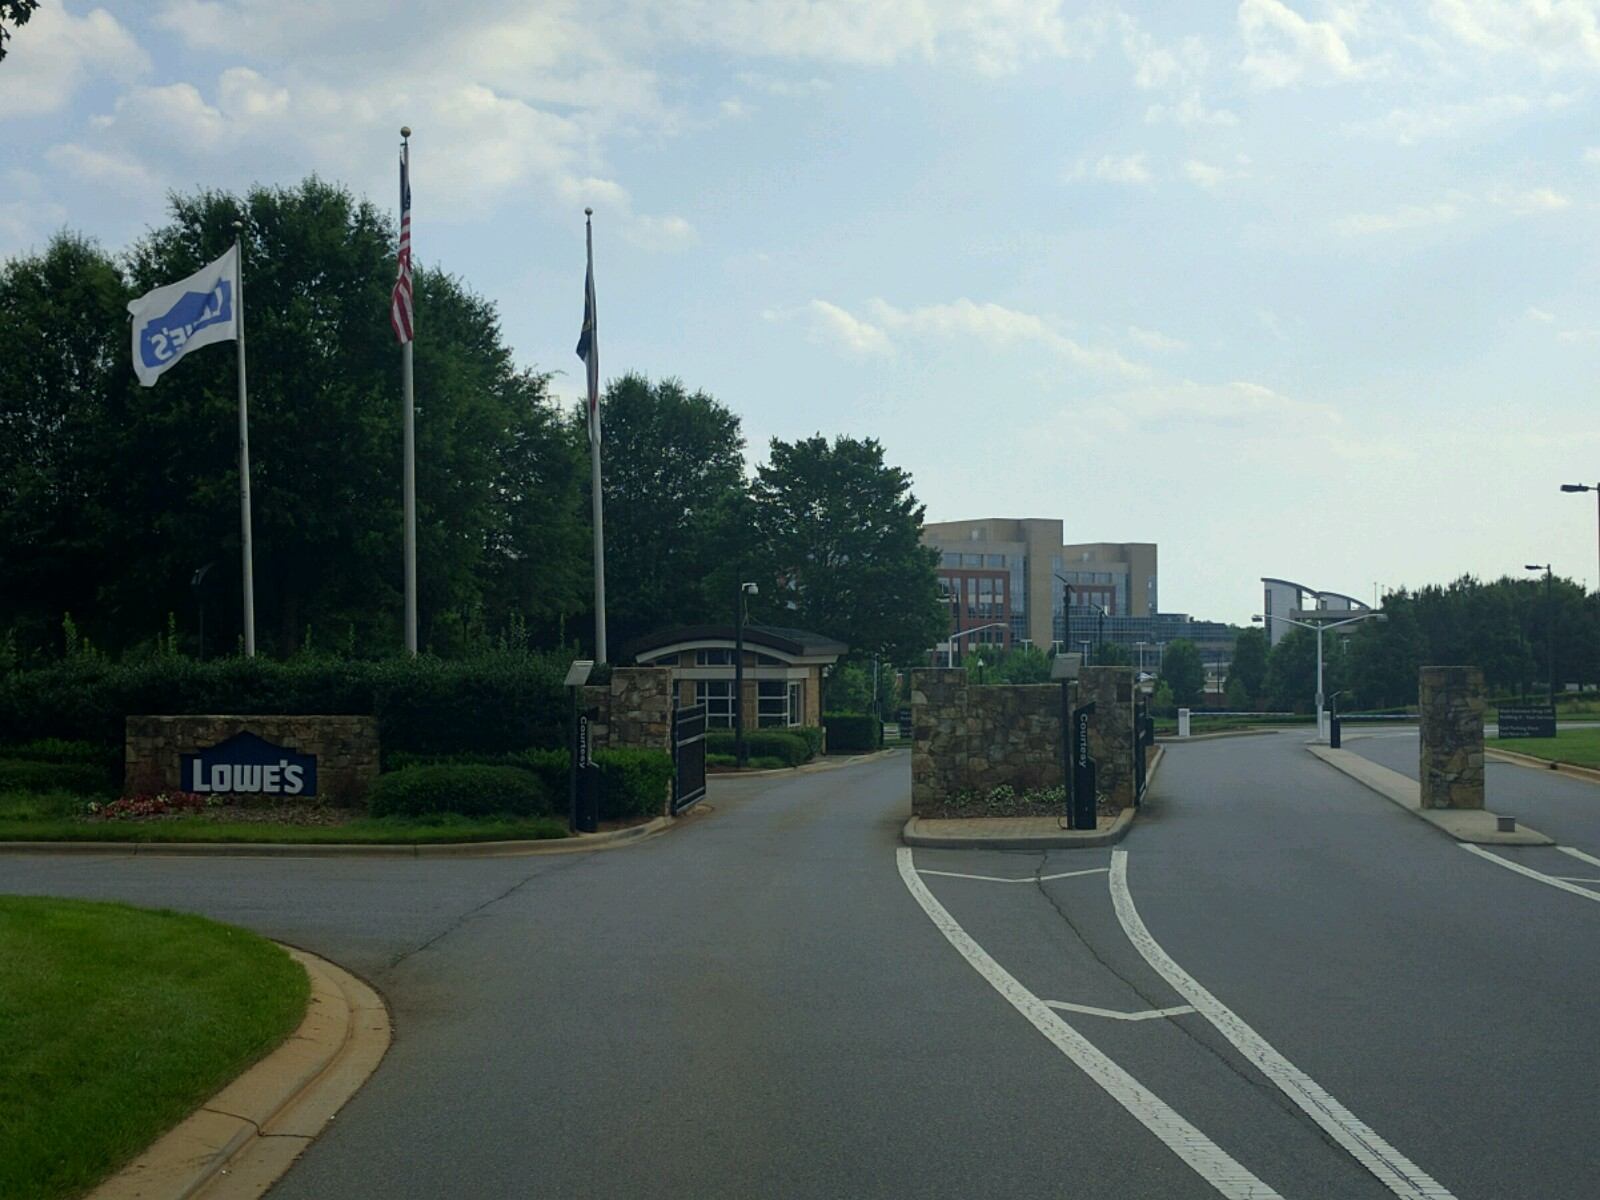 Entrance to Lowe's Companies' corporate headquarters in Mooresville, North Carolina.